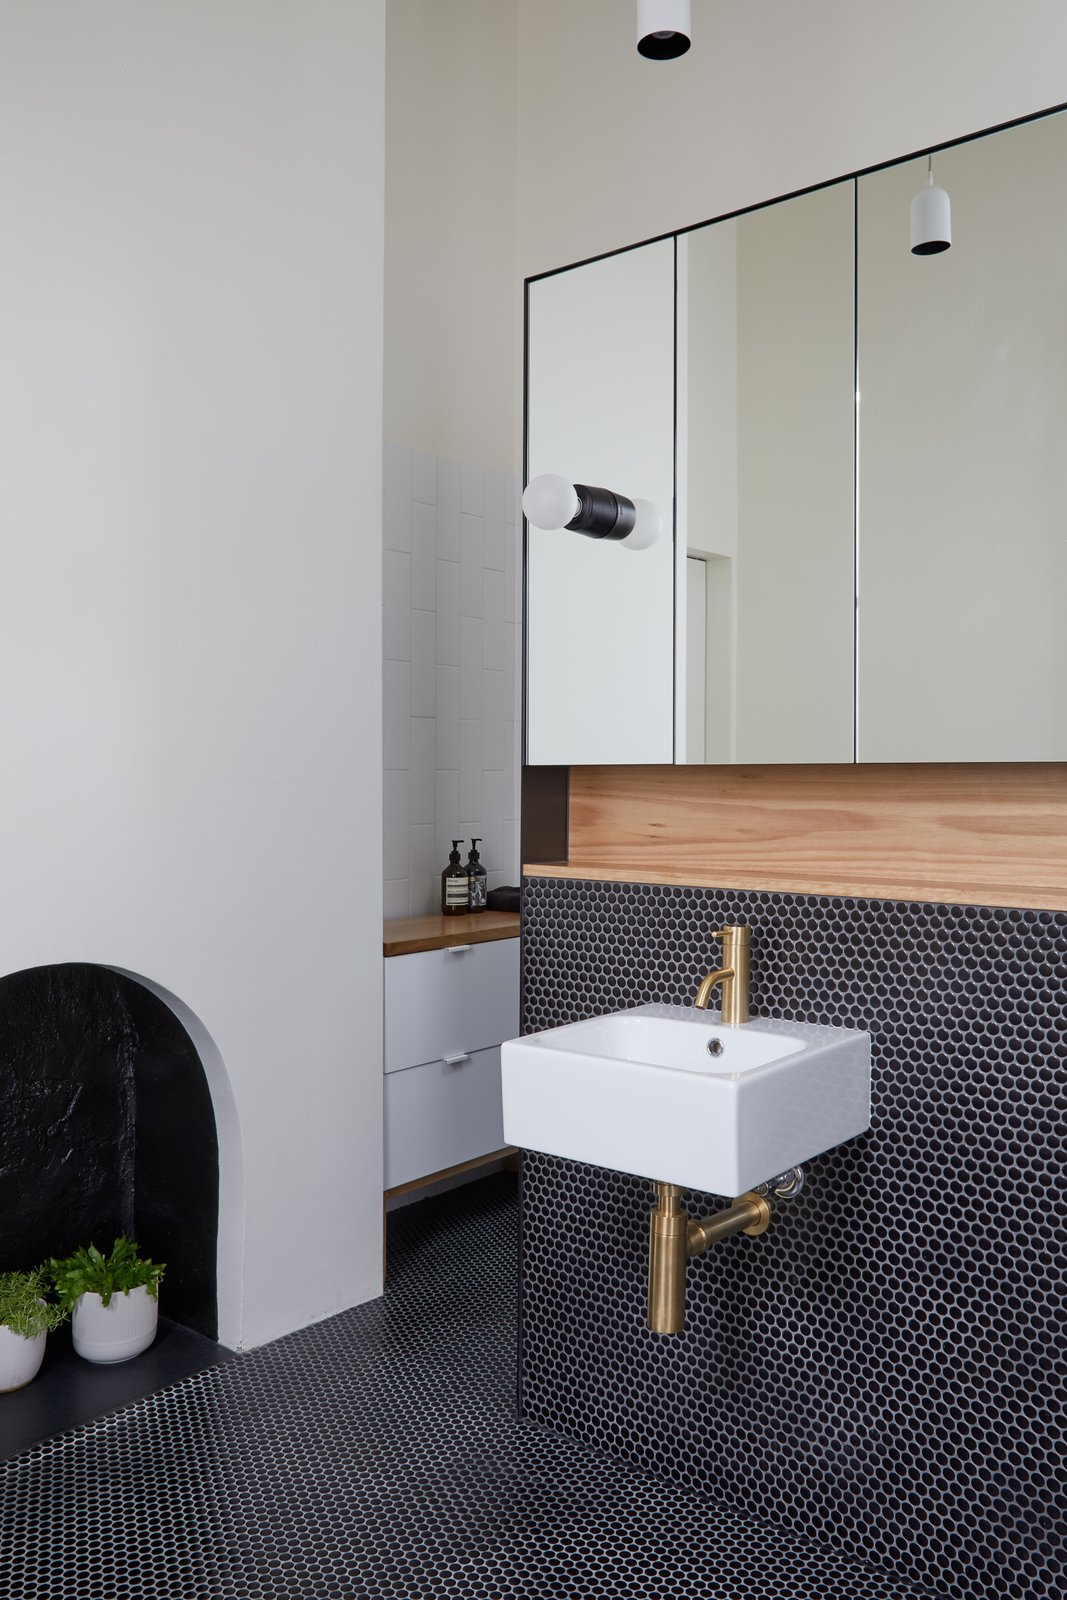 Bath Room, Pendant Lighting, Accent Lighting, Subway Tile Wall, Wall Lighting, Wood Counter, Ceramic Tile Floor, Wall Mount Sink, and Mosaic Tile Wall Ensuite vanity wall   Photo 12 of 21 in Thanks to a Double-Height Dining Room, a Melbourne Home Basks in Sunshine and Courtyard Views from South Yarra Void House